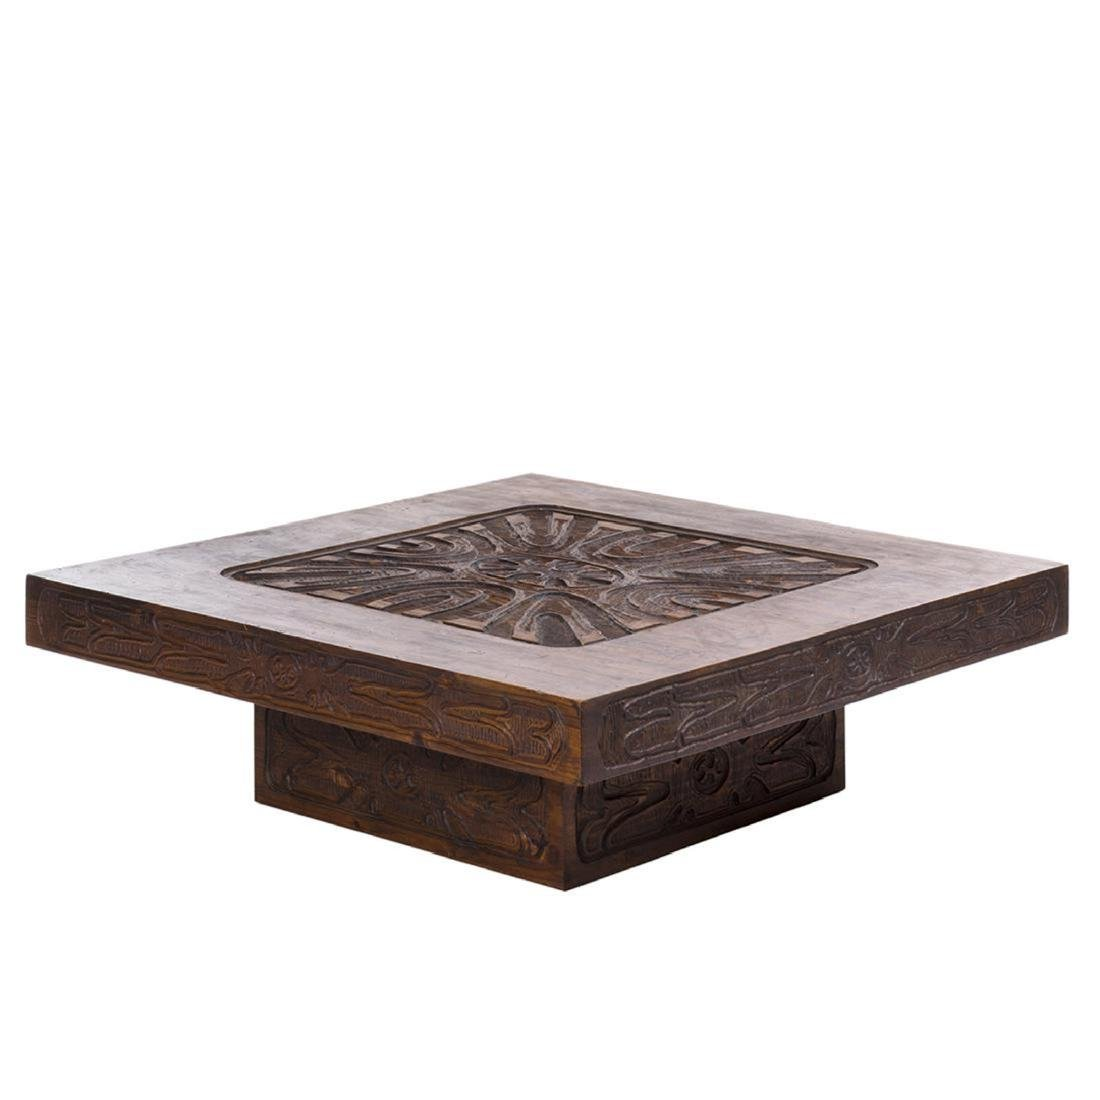 Carved Abstract Coffee Table - 6